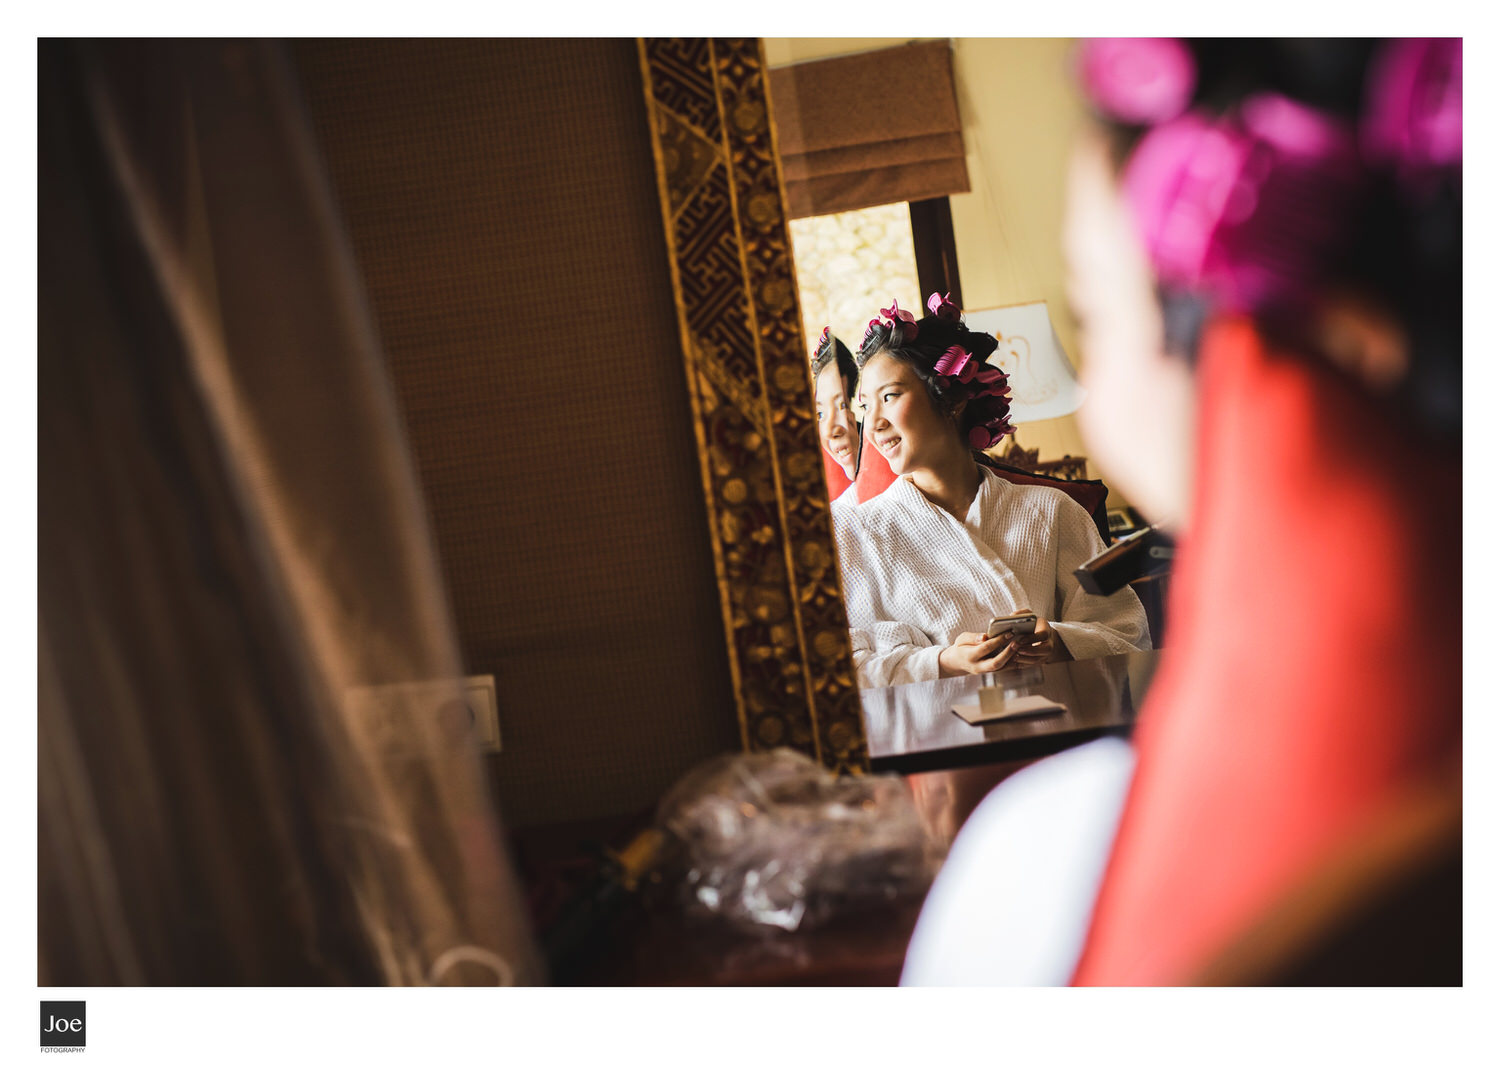 joe-fotography-bali-wedding-ayana-resort-janie-sean-26.jpg